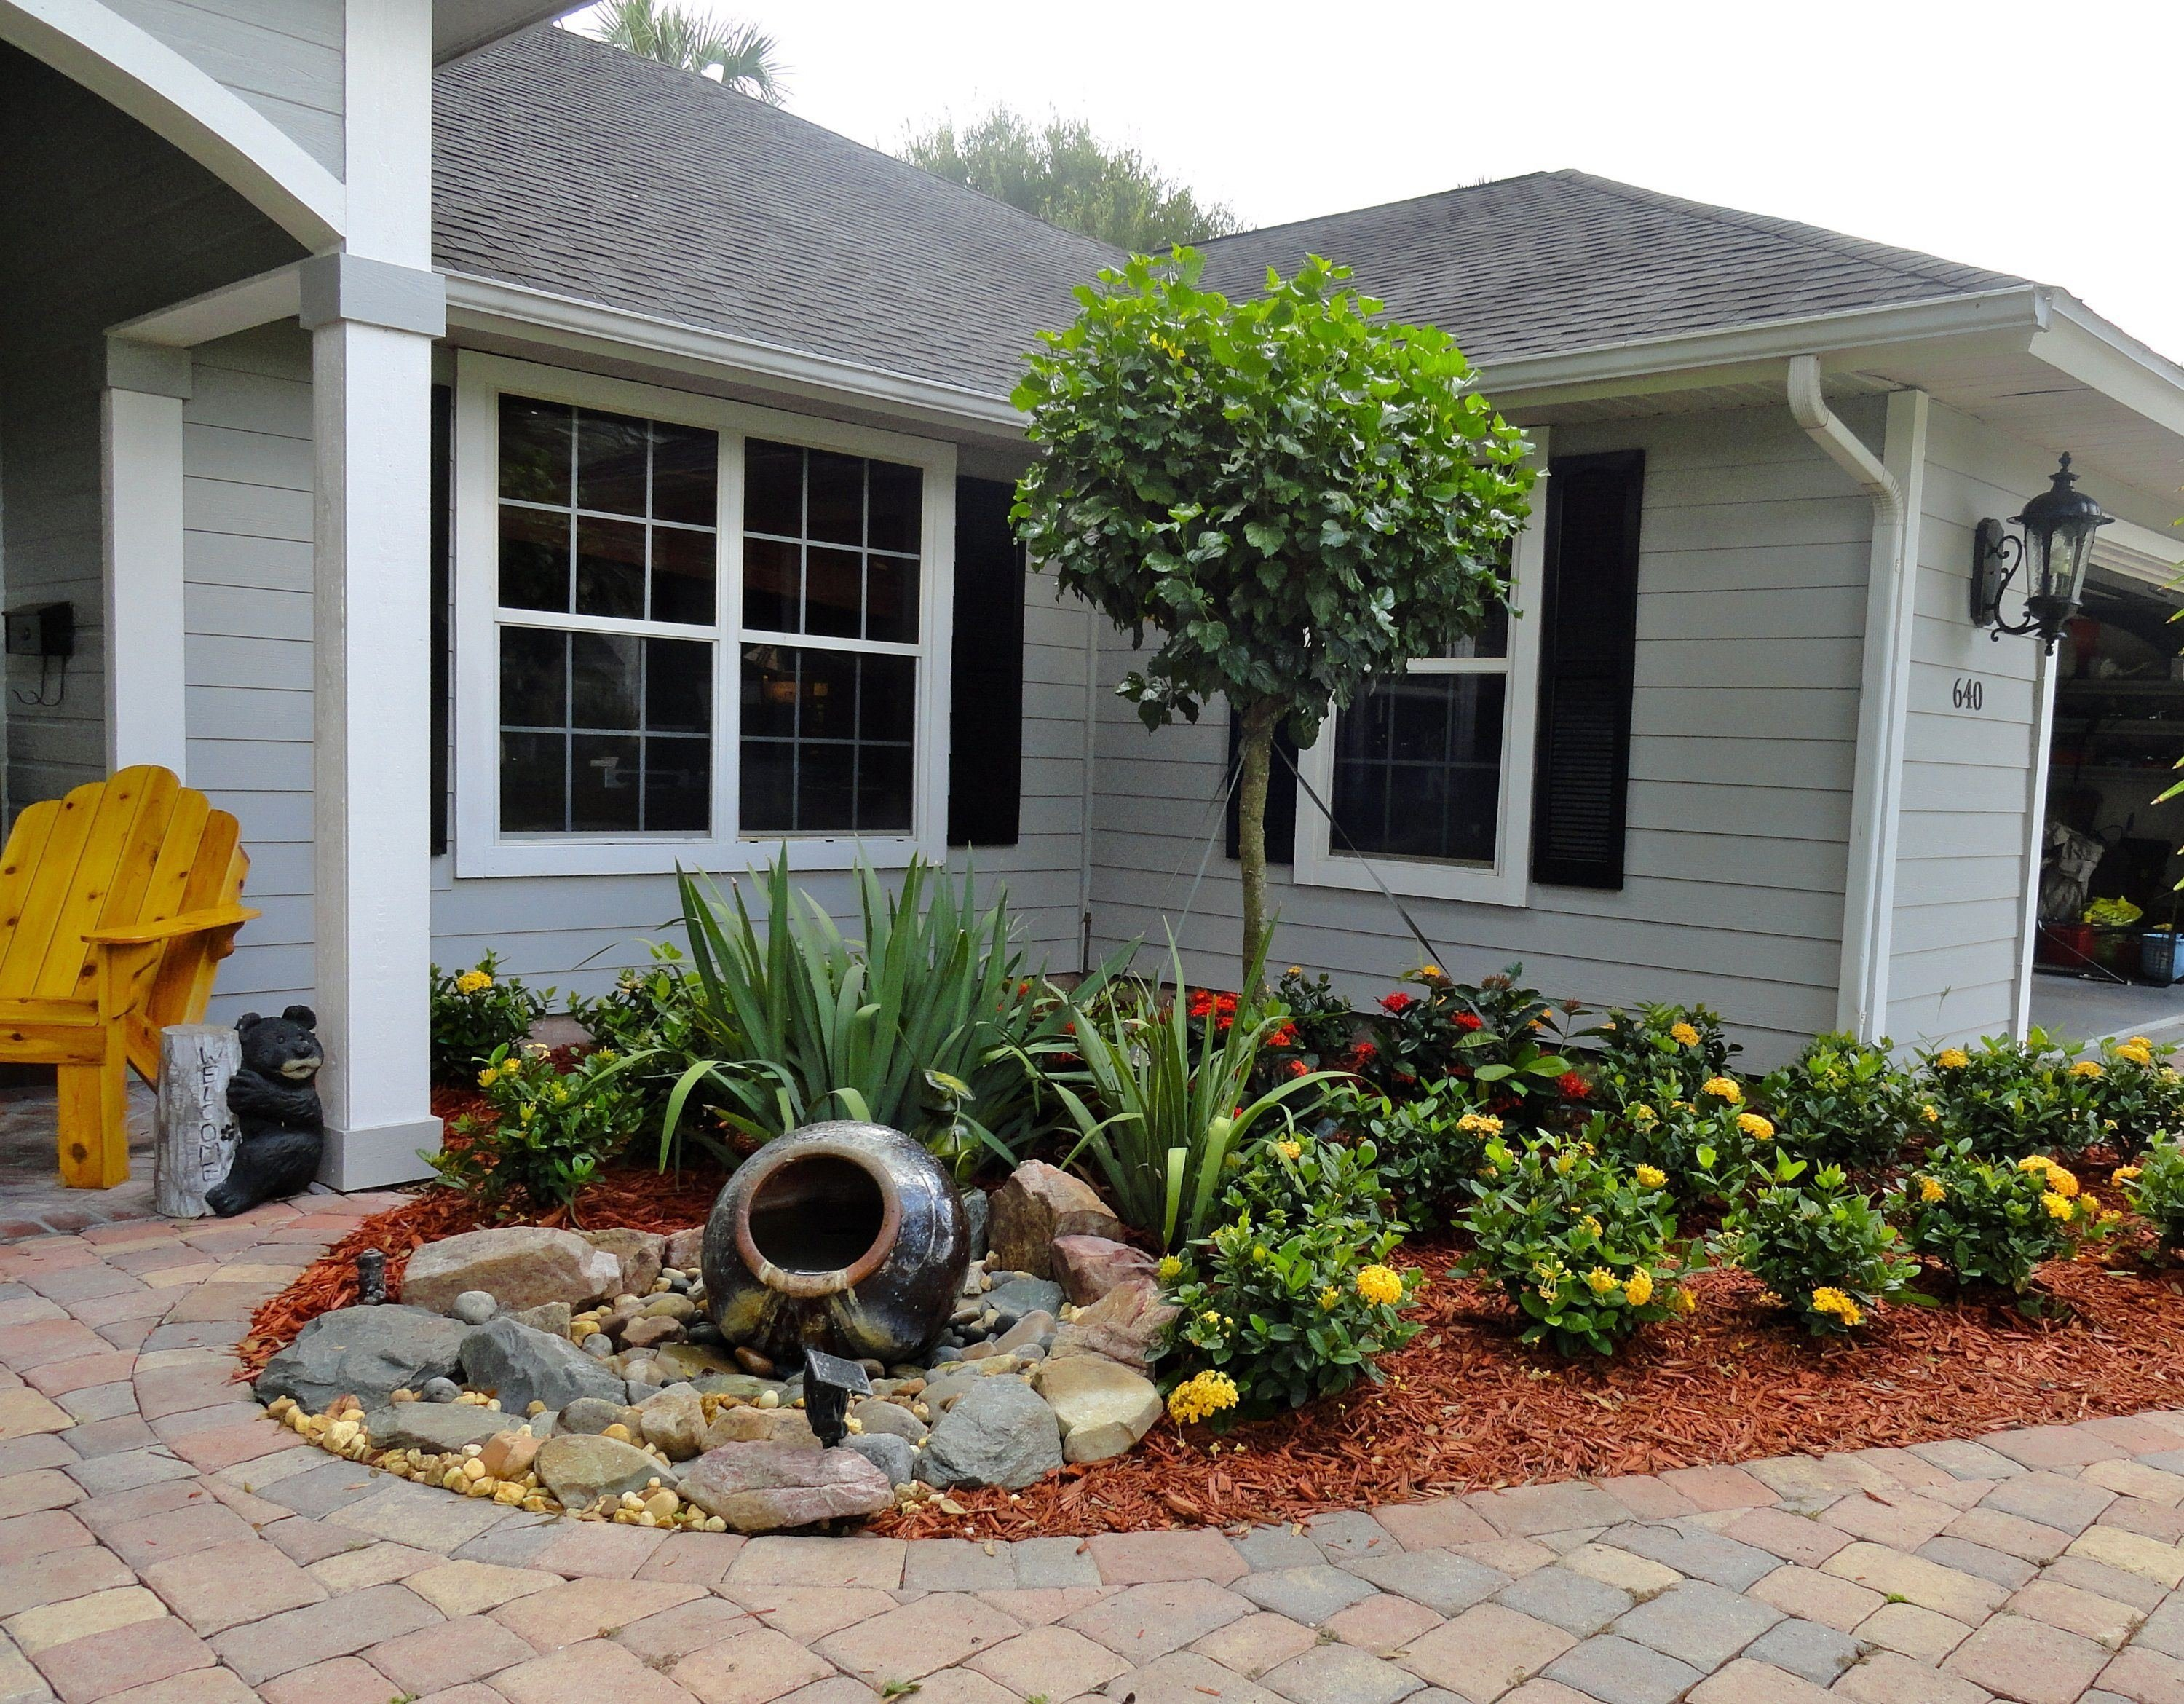 10 Spectacular Front Yard Landscaping Ideas On A Budget small front garden ideas on a budget fabulous beautiful small 2 2020